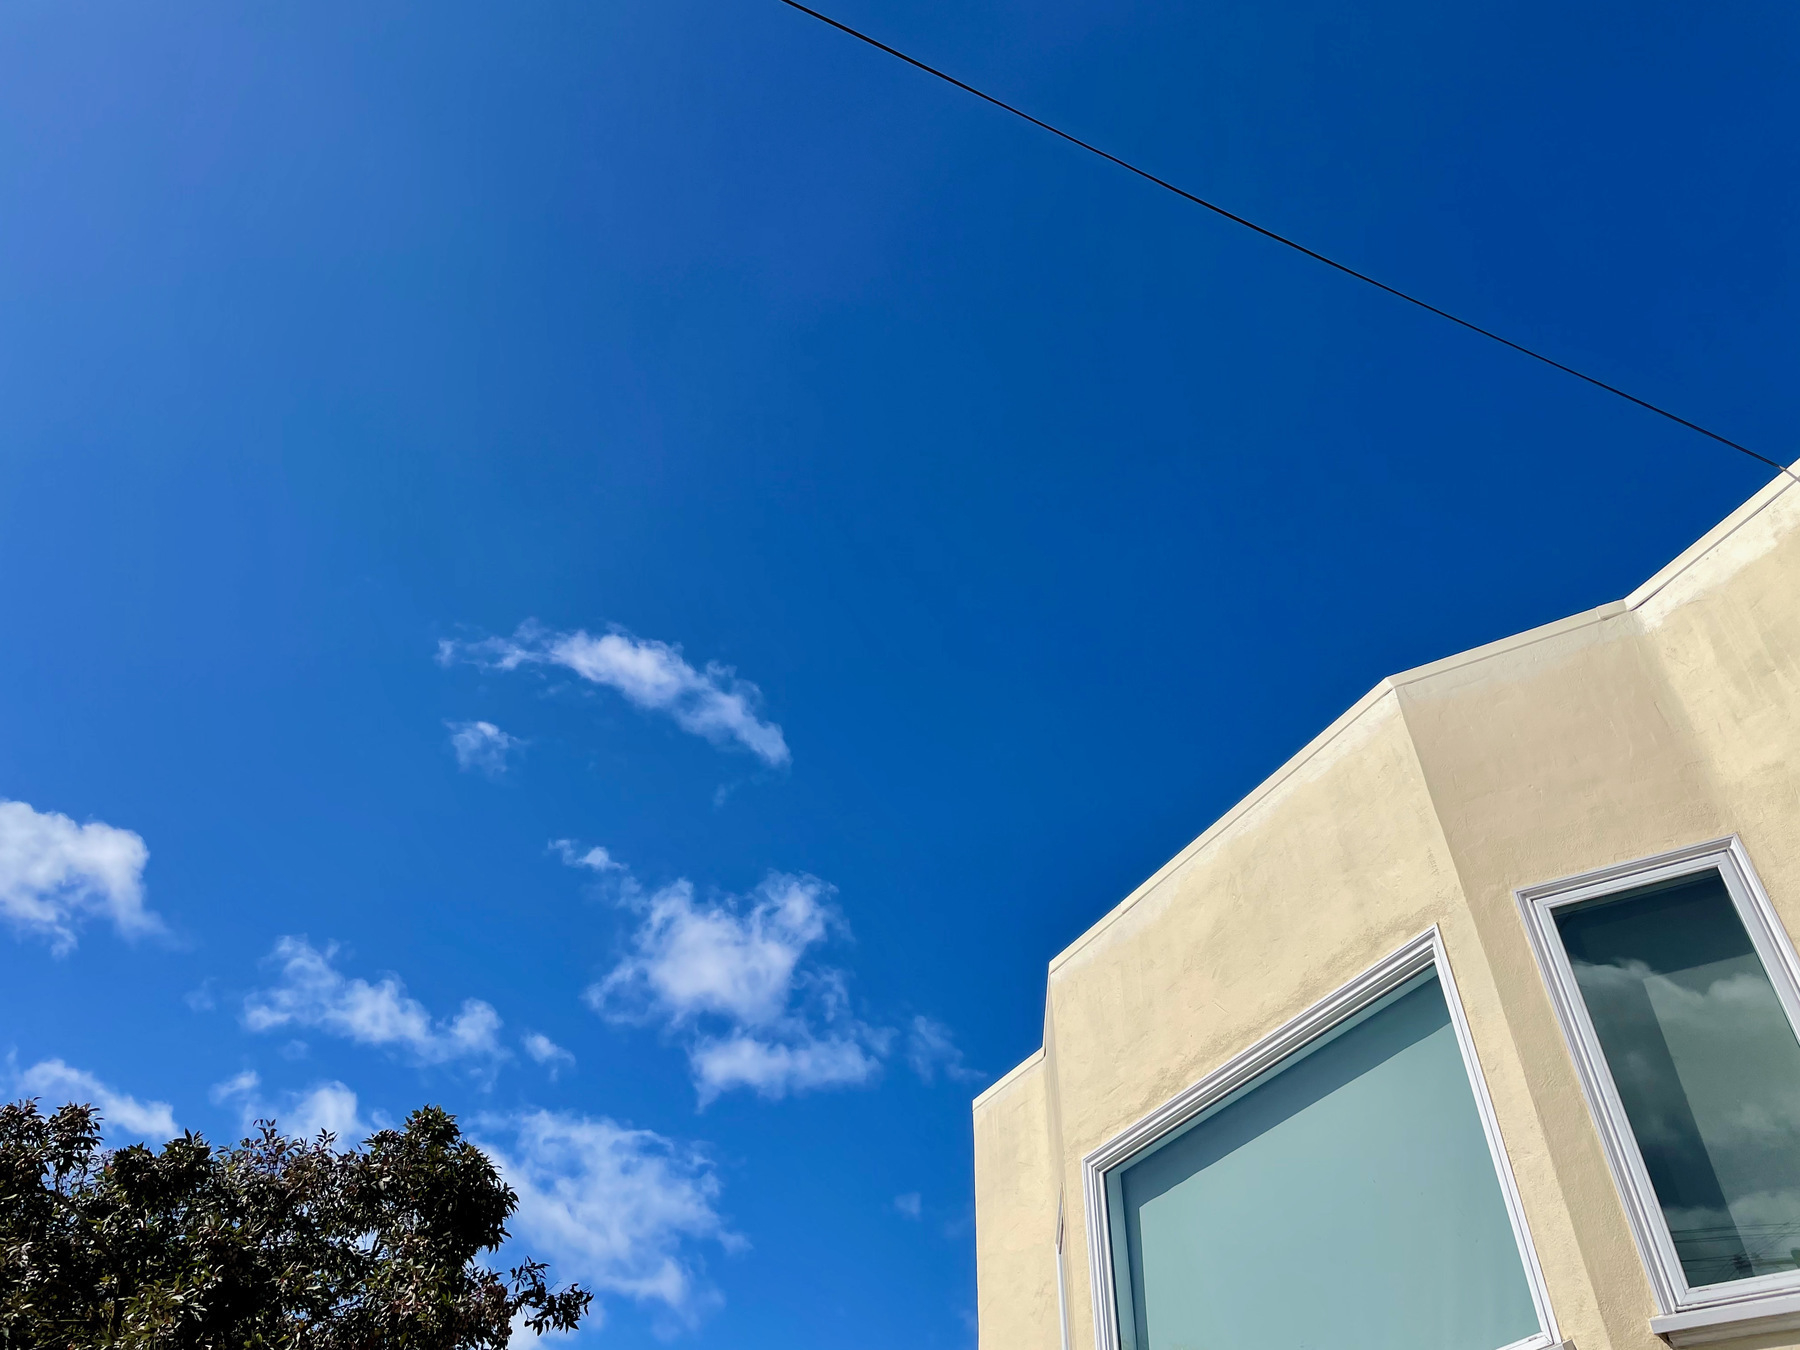 Picture of a few clouds in a blue sky with the top of a gree and the corner of a beige house